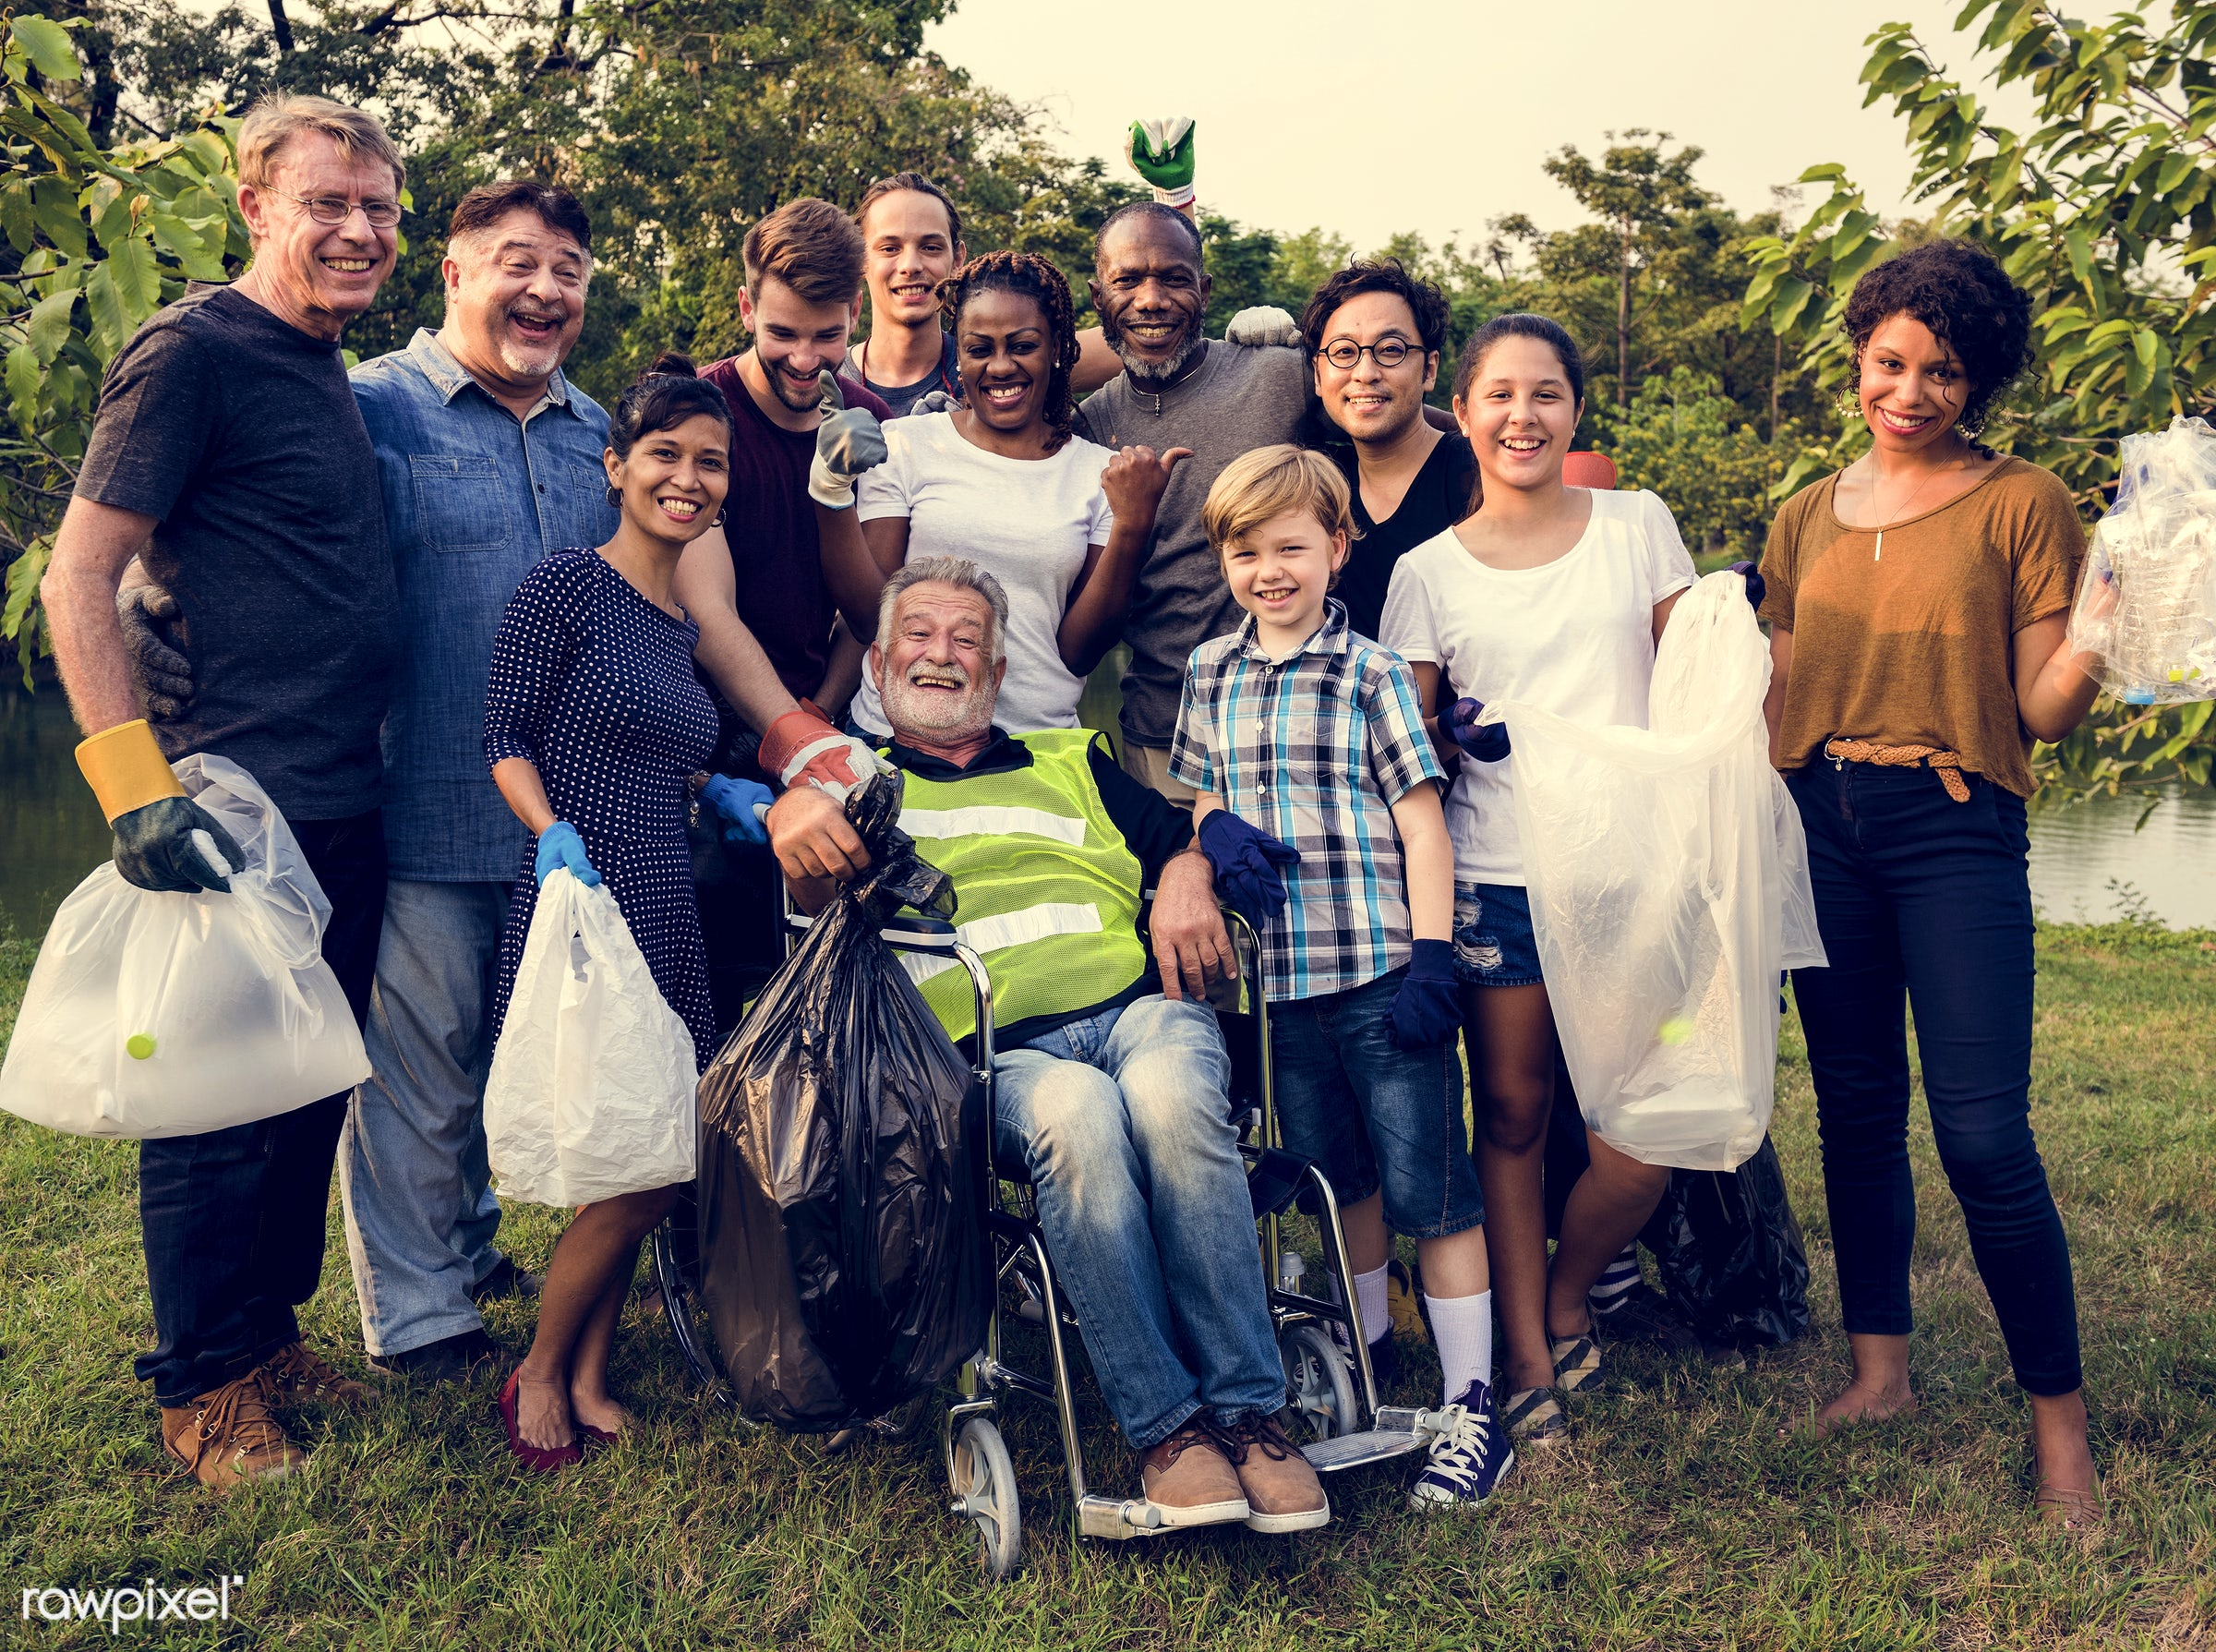 person, diverse, charity, garbage, people, together, kid, friends, nature, family, woman, social, lifestyle, care, voluntary...